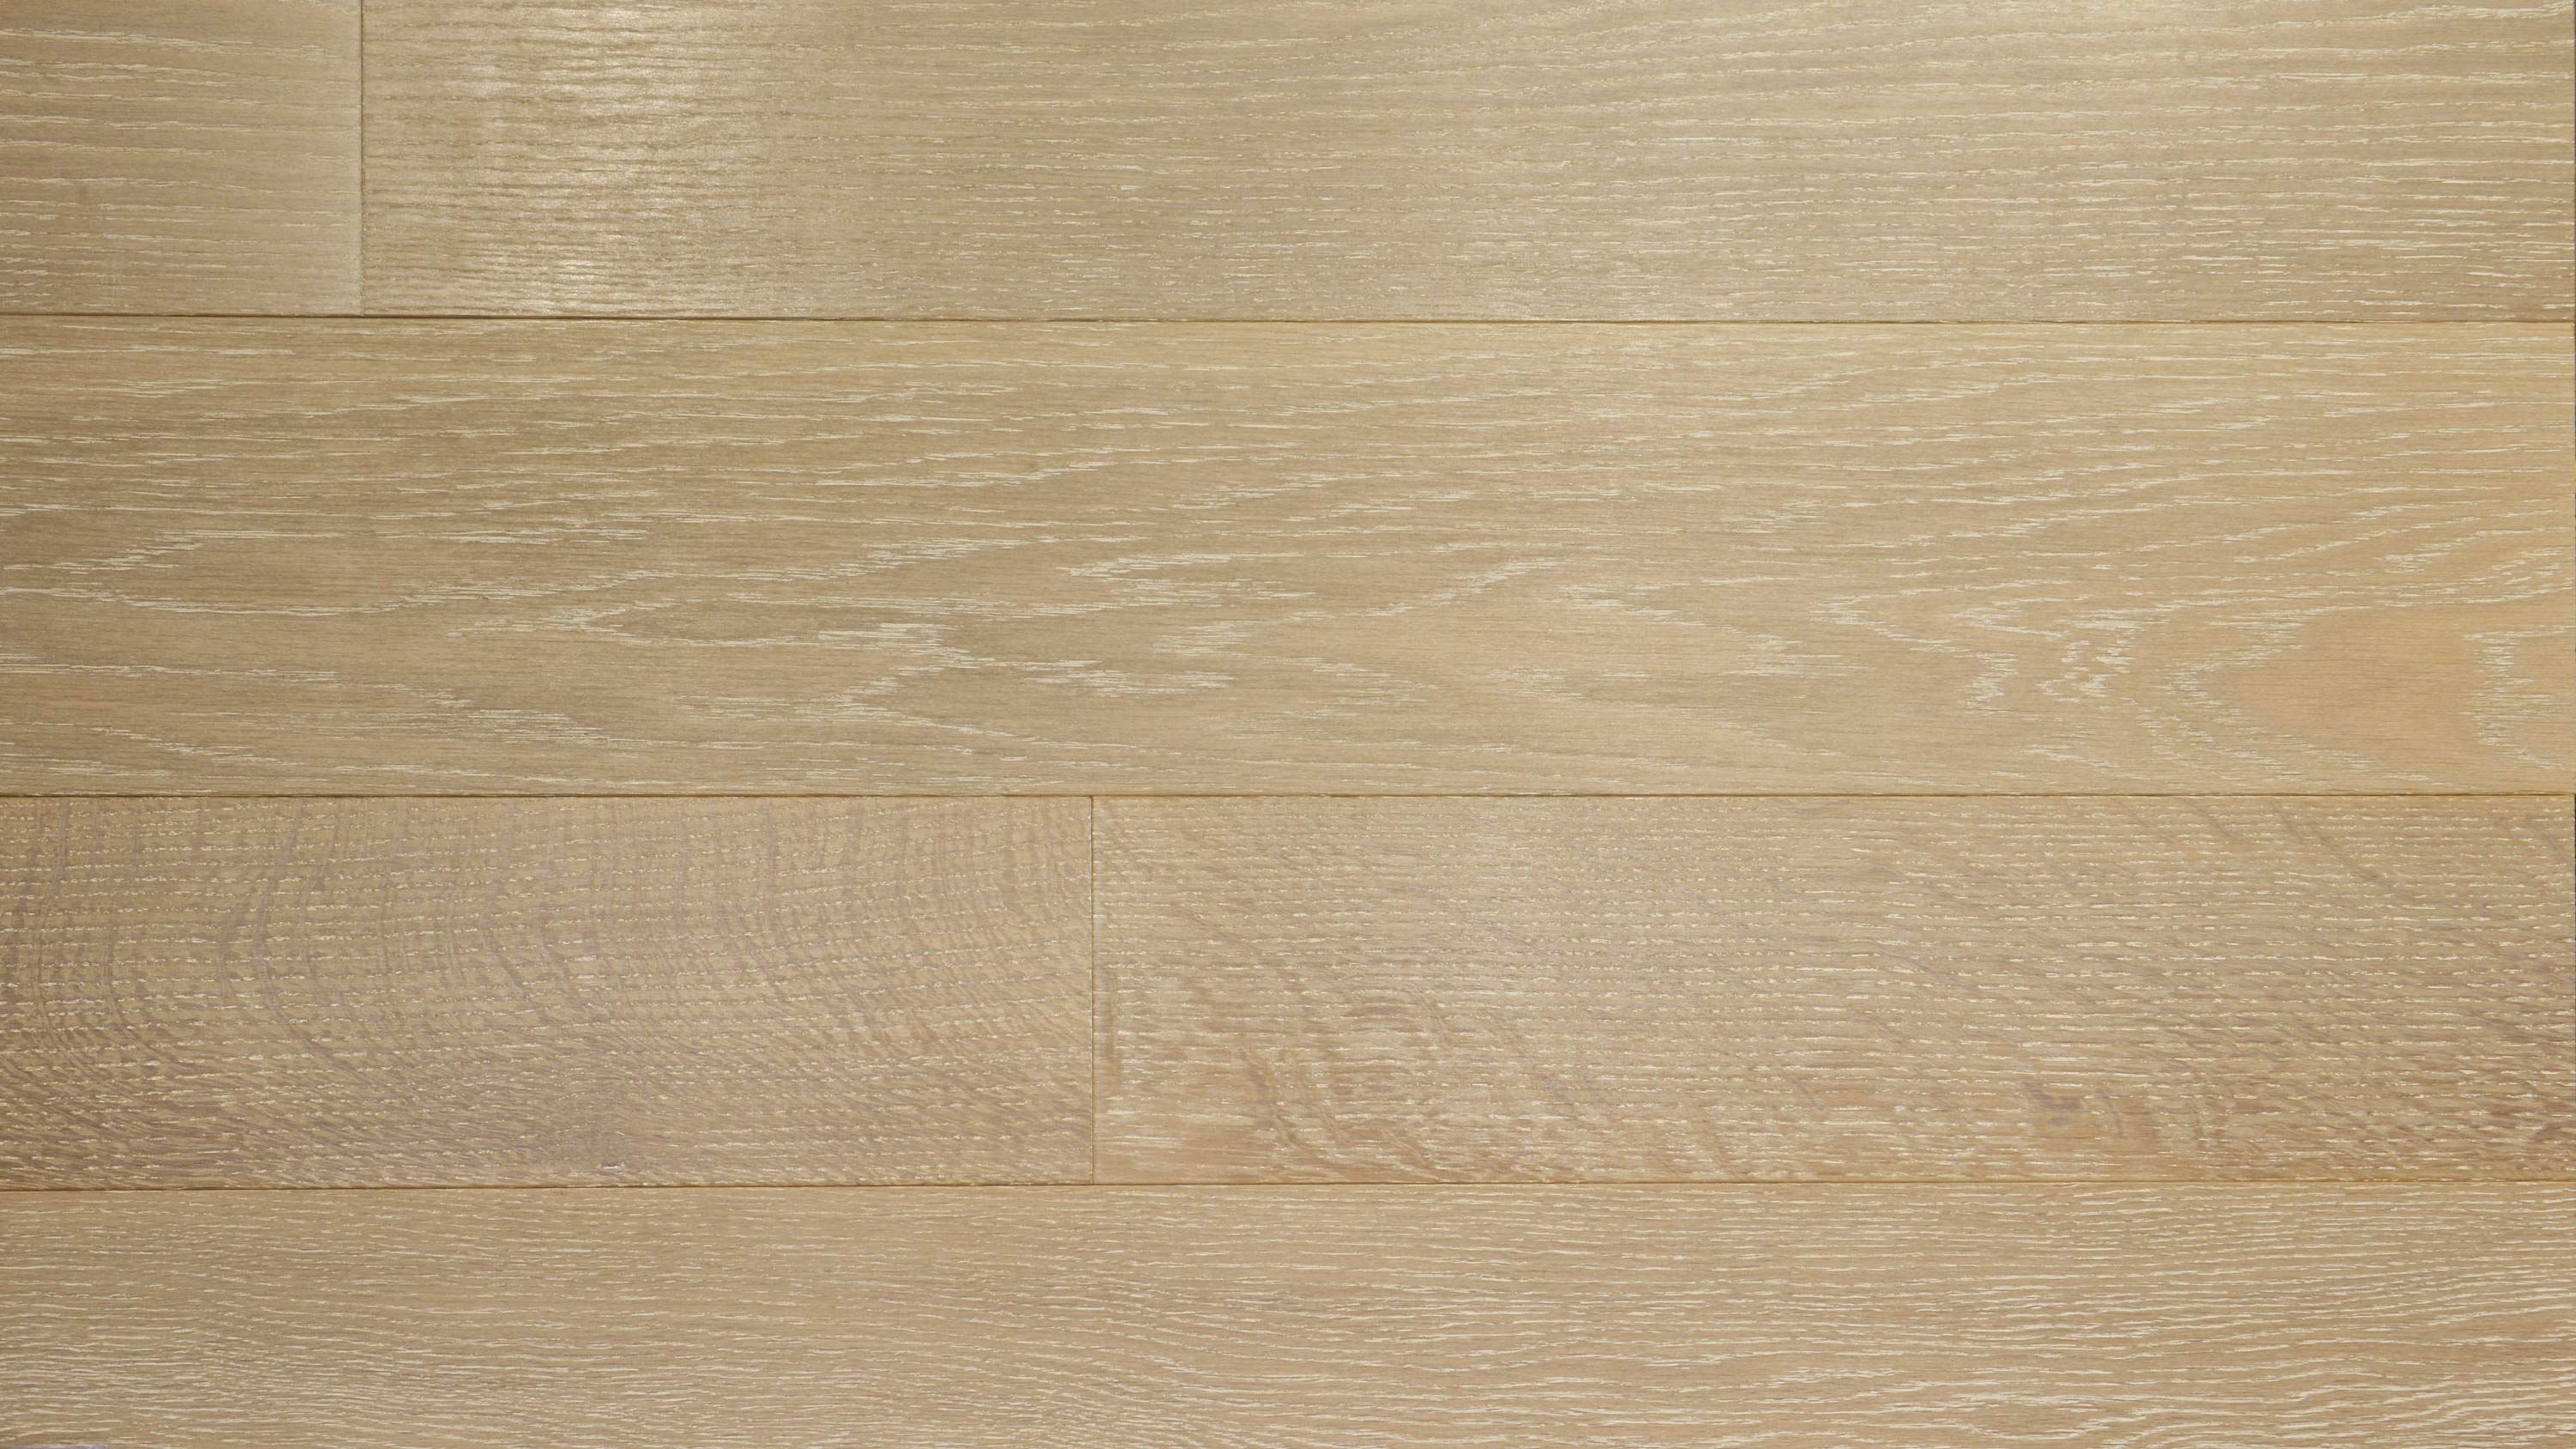 Conrad Oak These Boards Are Engineered To A Very High Level Of Quality By Having A Bottom Counter Balance Laye Light Oak Floors Light Wood Floors Wood Floors